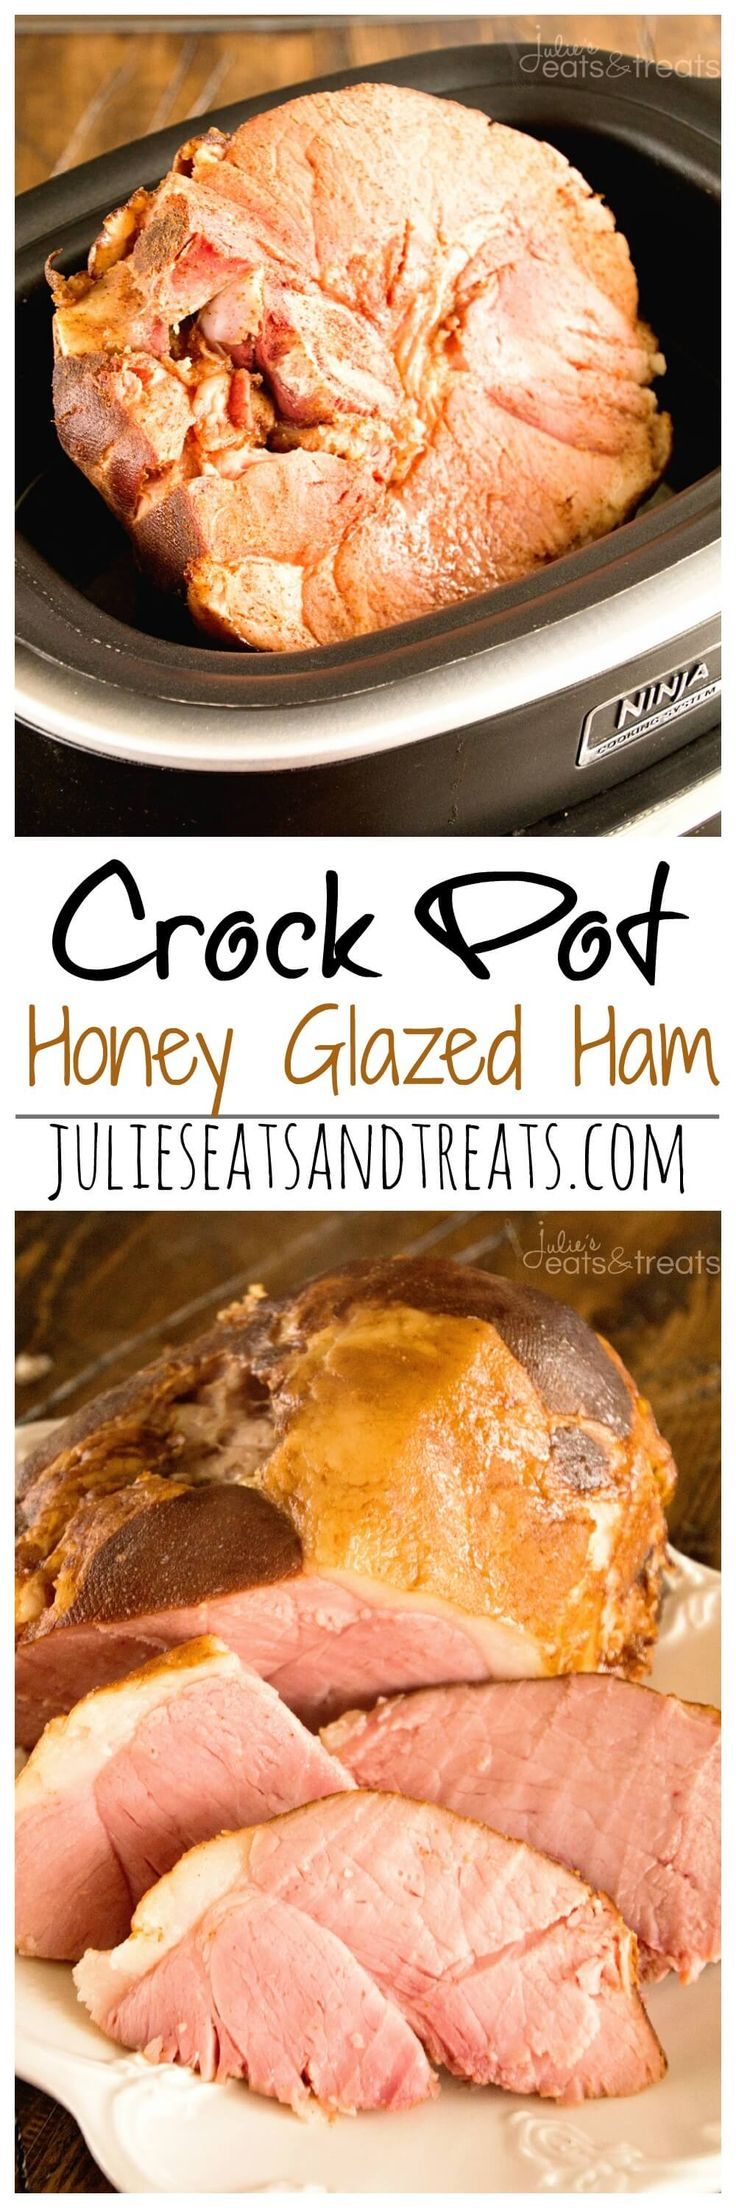 how to cook honey baked ham in crockpot